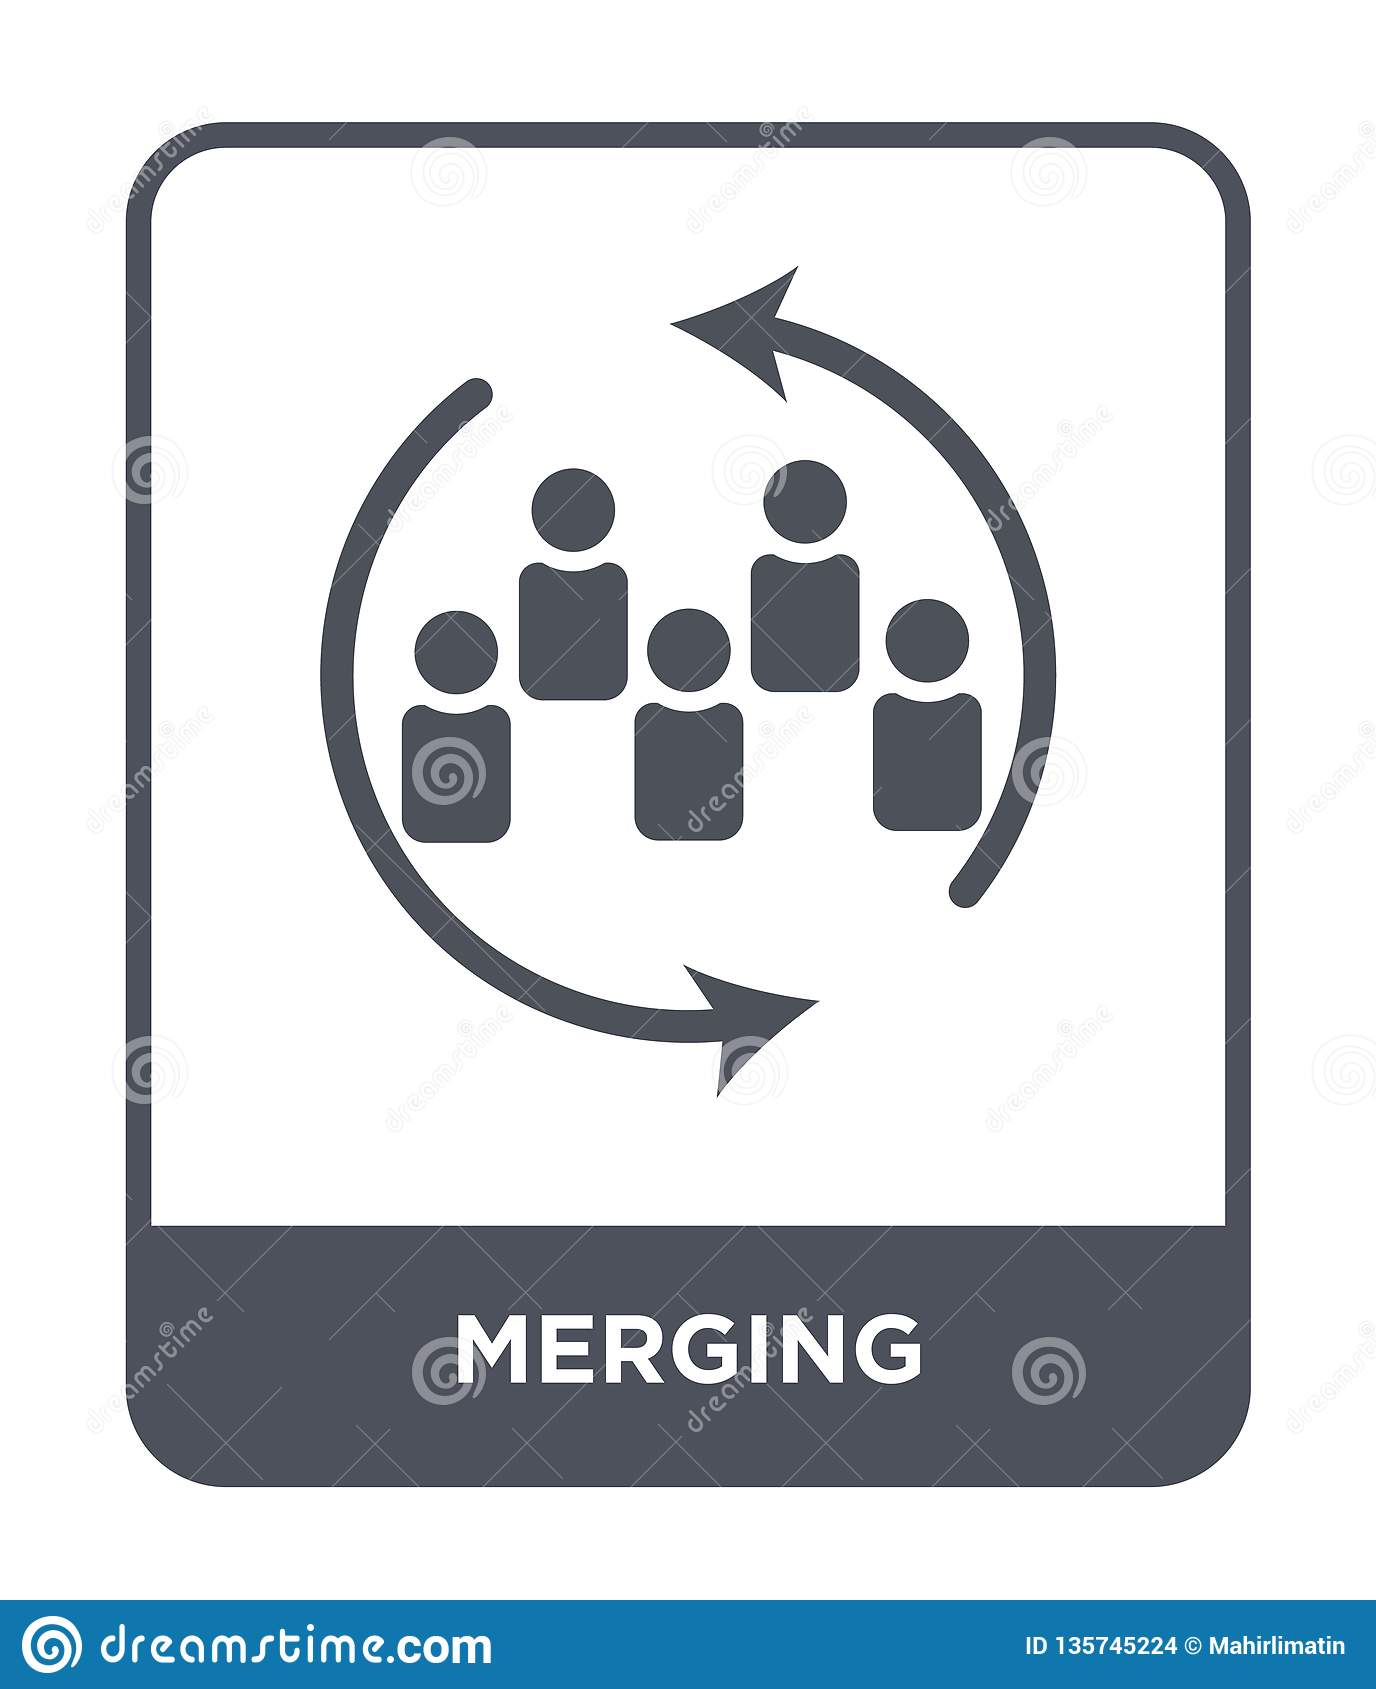 merging icon in trendy design style. merging icon isolated on white background. merging vector icon simple and modern flat symbol